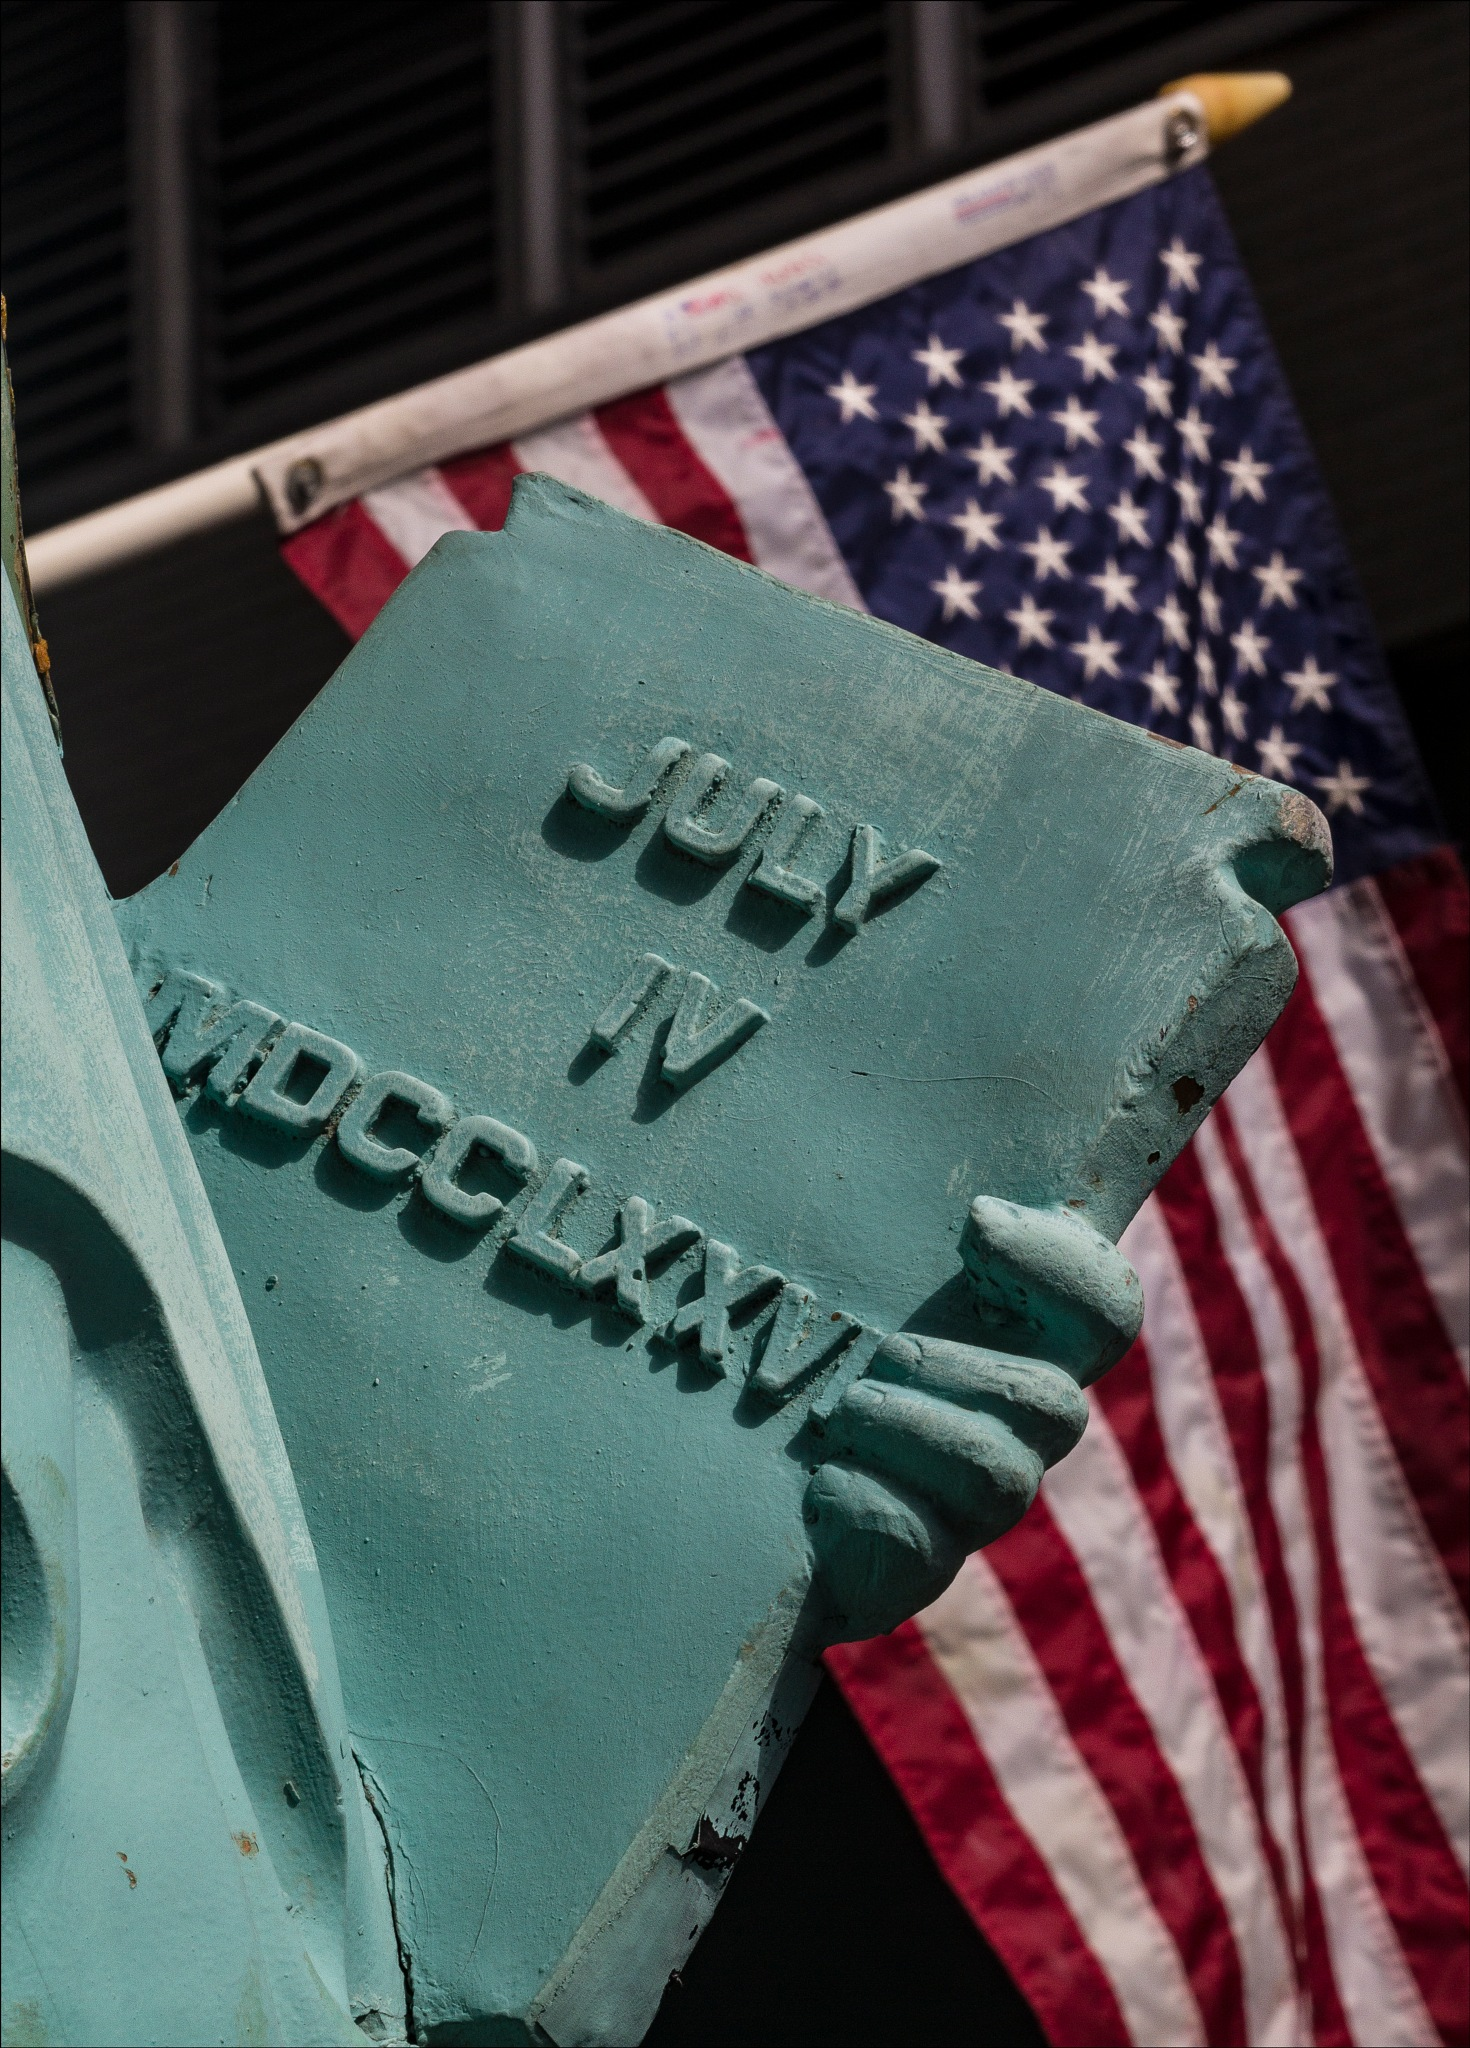 Model of Statue of Liberty - Detail by robertullmann